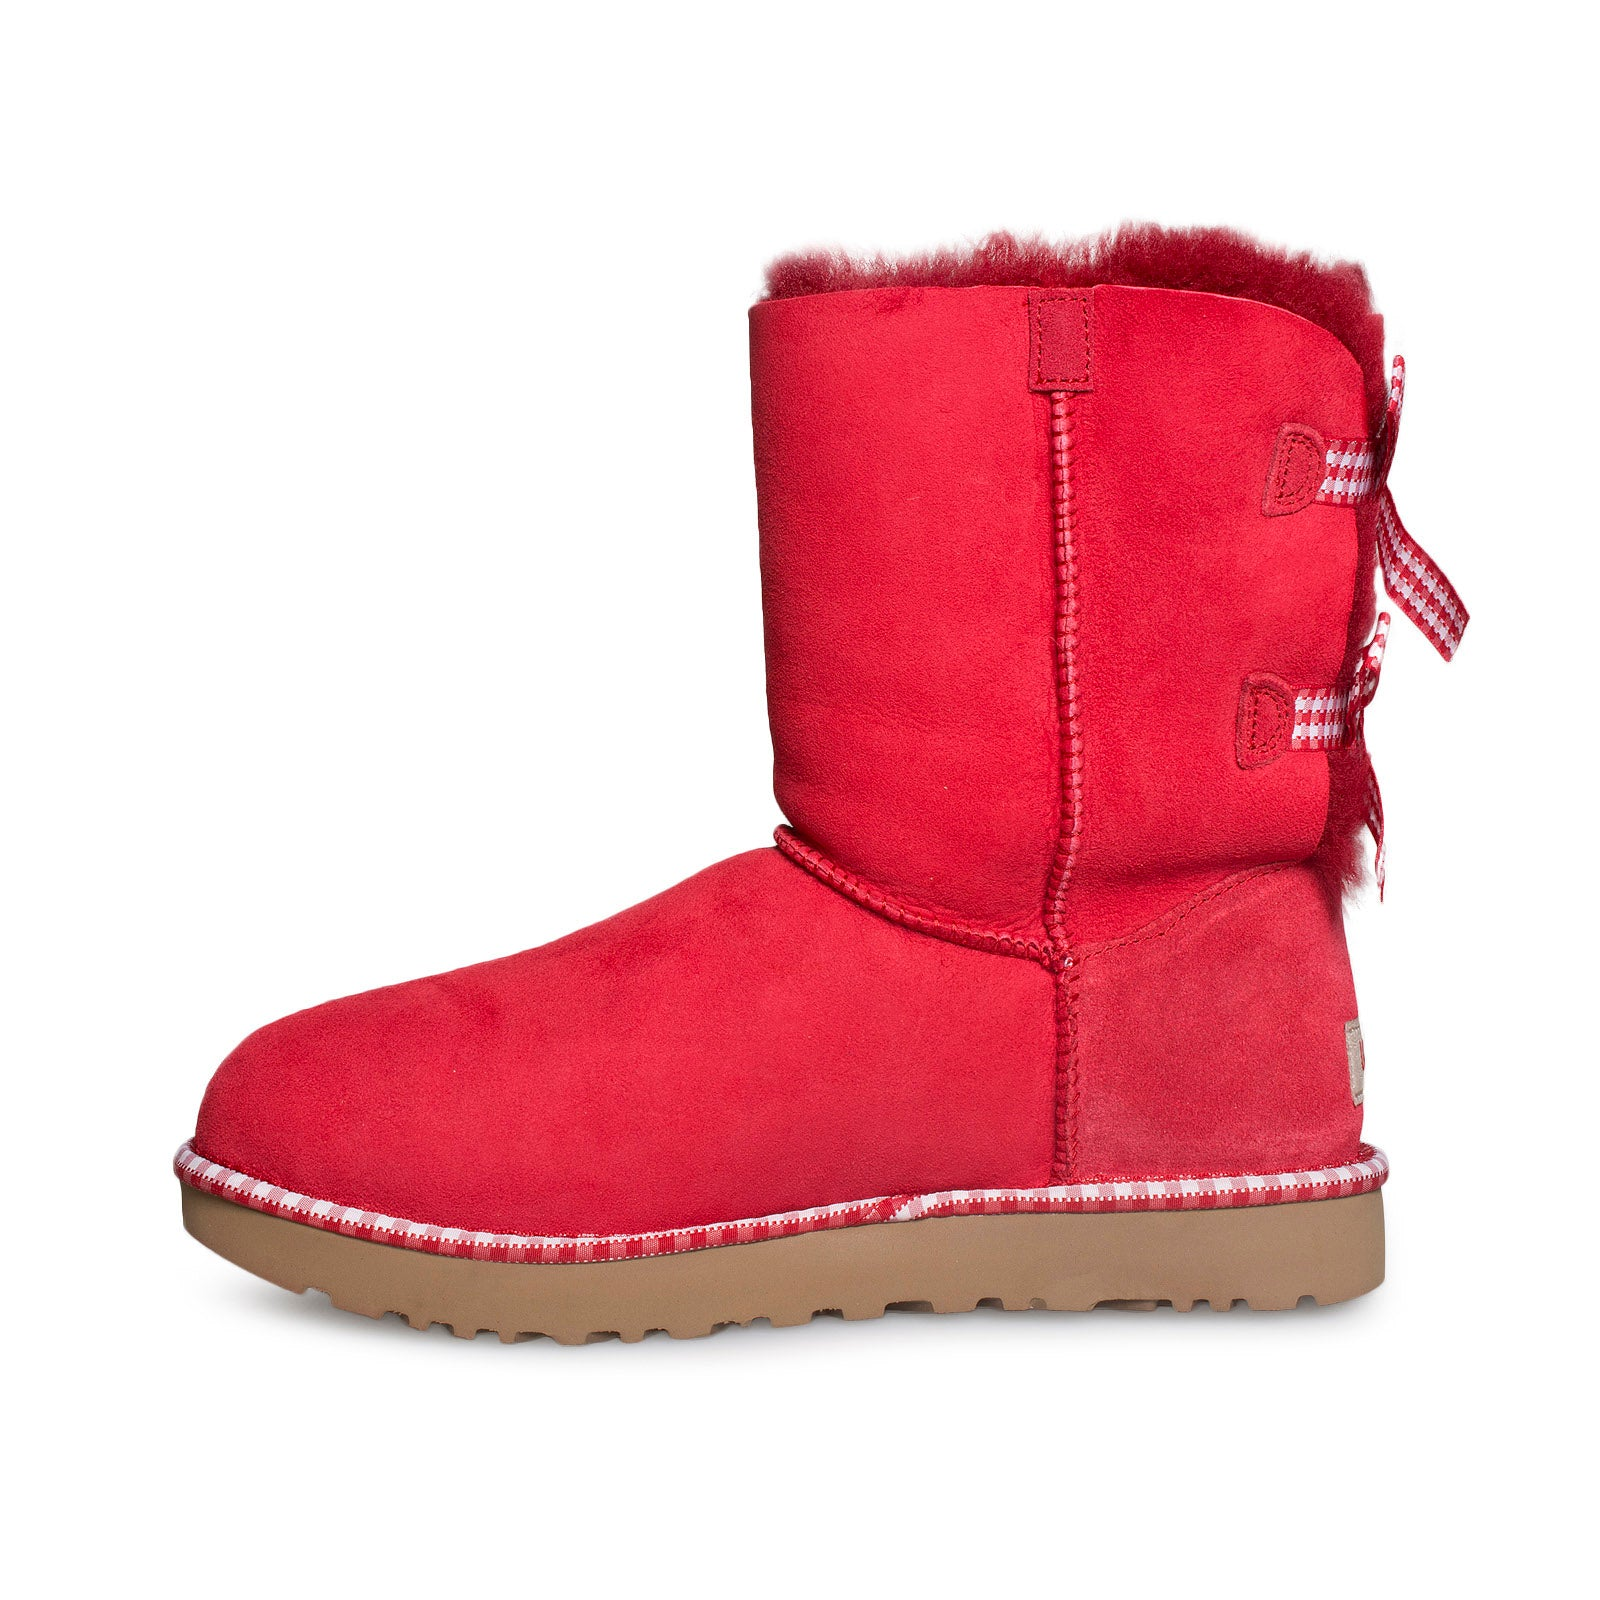 57a10c37020 UGG Bailey Bow Gingham Ribbon Red Boots - Women's